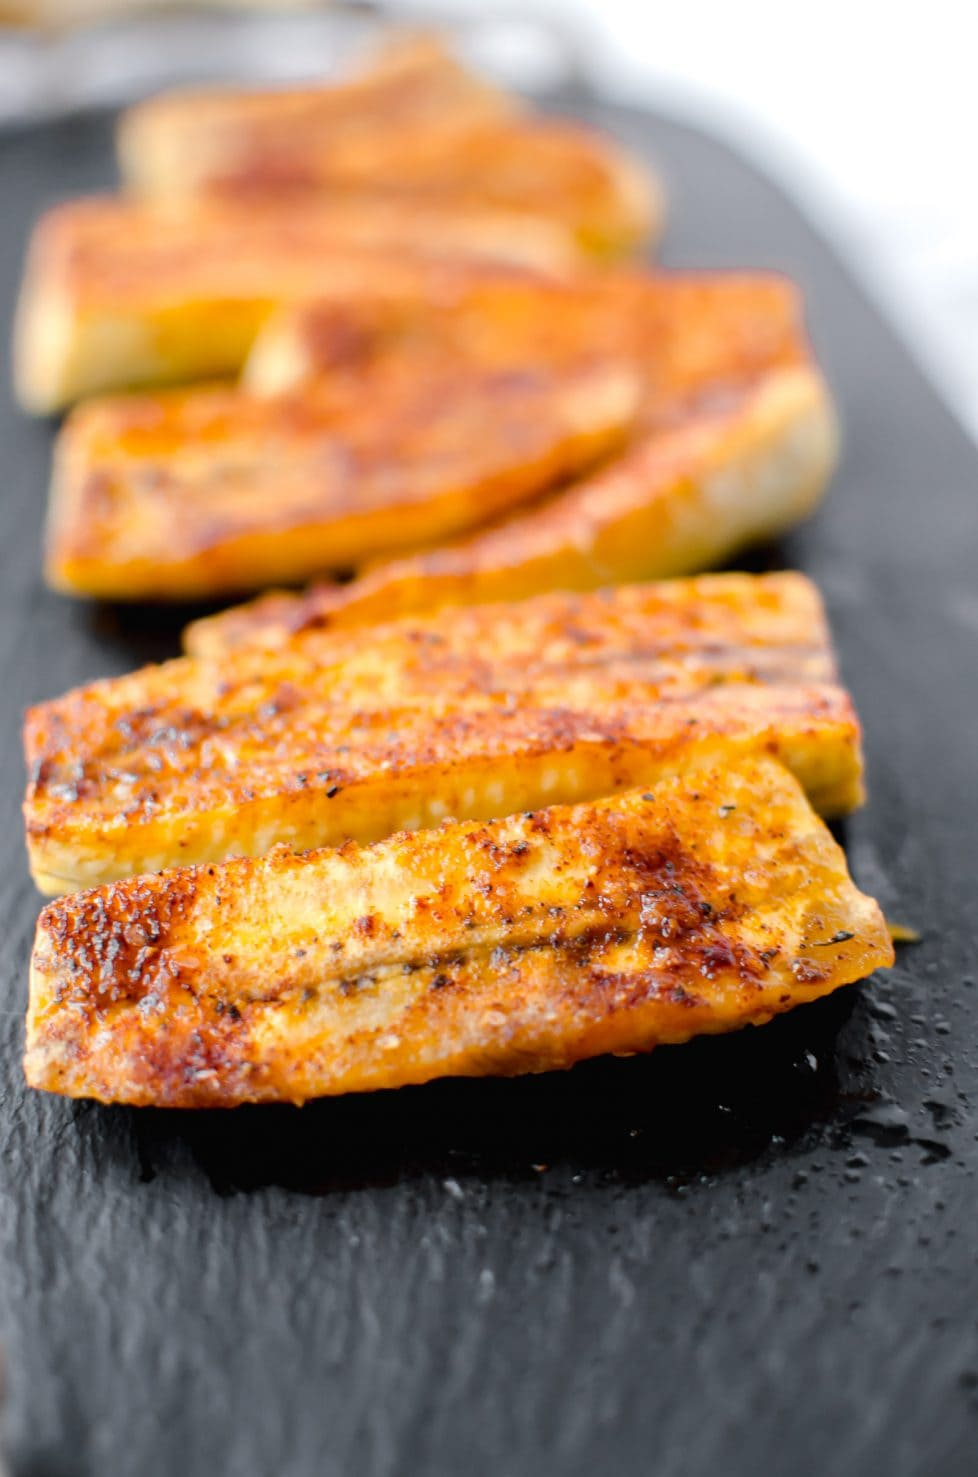 This recipe for sweet and smoky roasted plantains is such a fun, easy side dish to serve with any Mexican-style meal. The plantains are roasted and topped with a sweet and smokey rub.